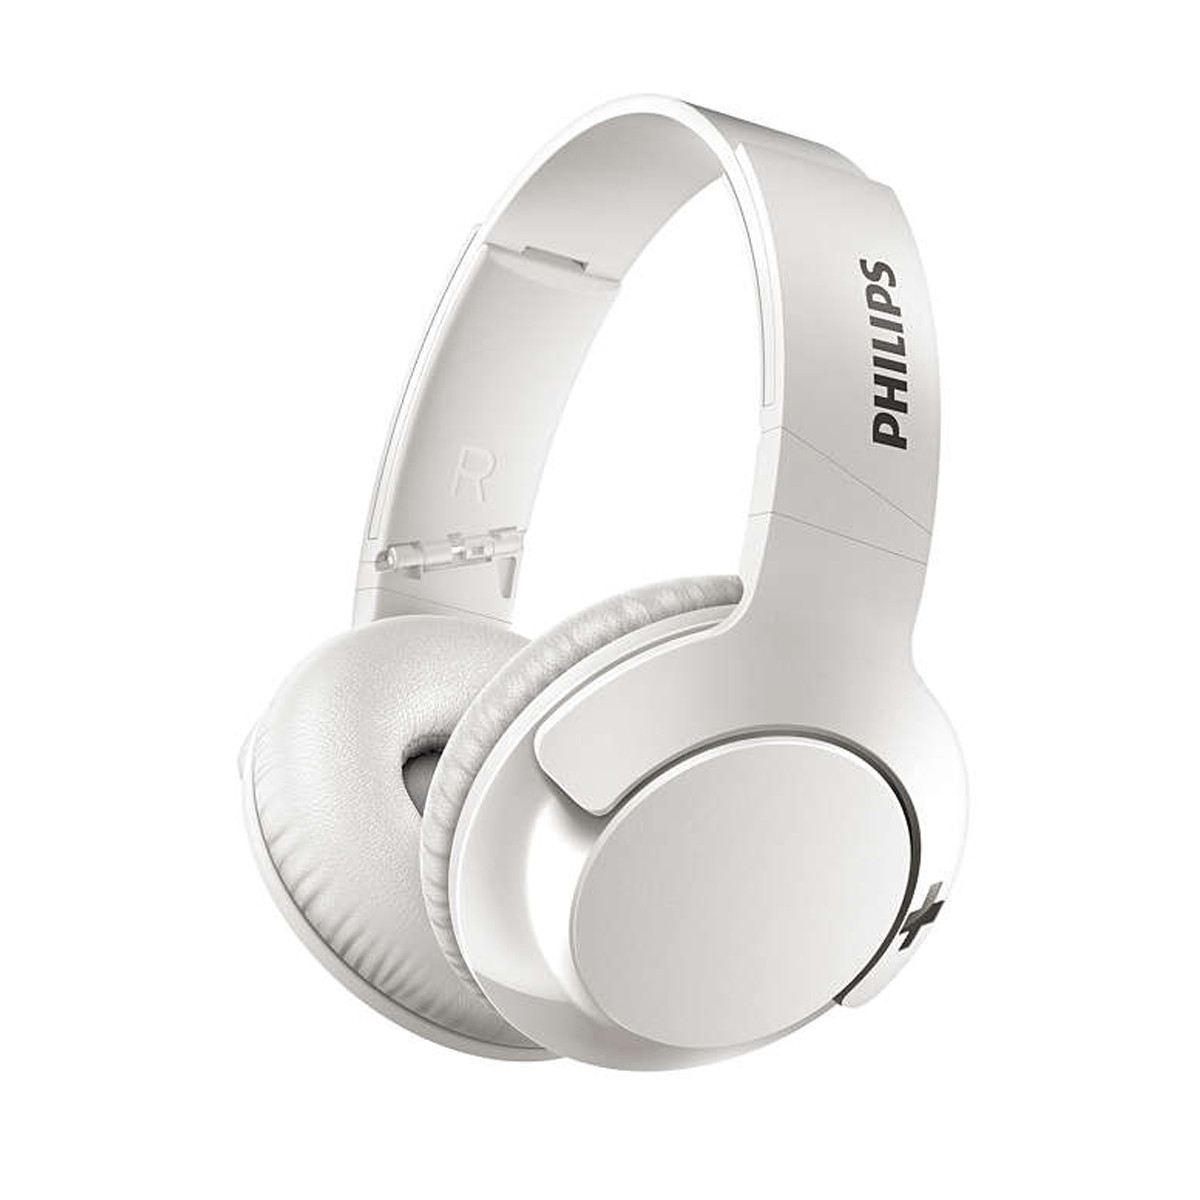 Fone de Ouvido Headset Bluetooth Headphone BASS+ SHB3175WT Supra-Auricular Branco | Philips